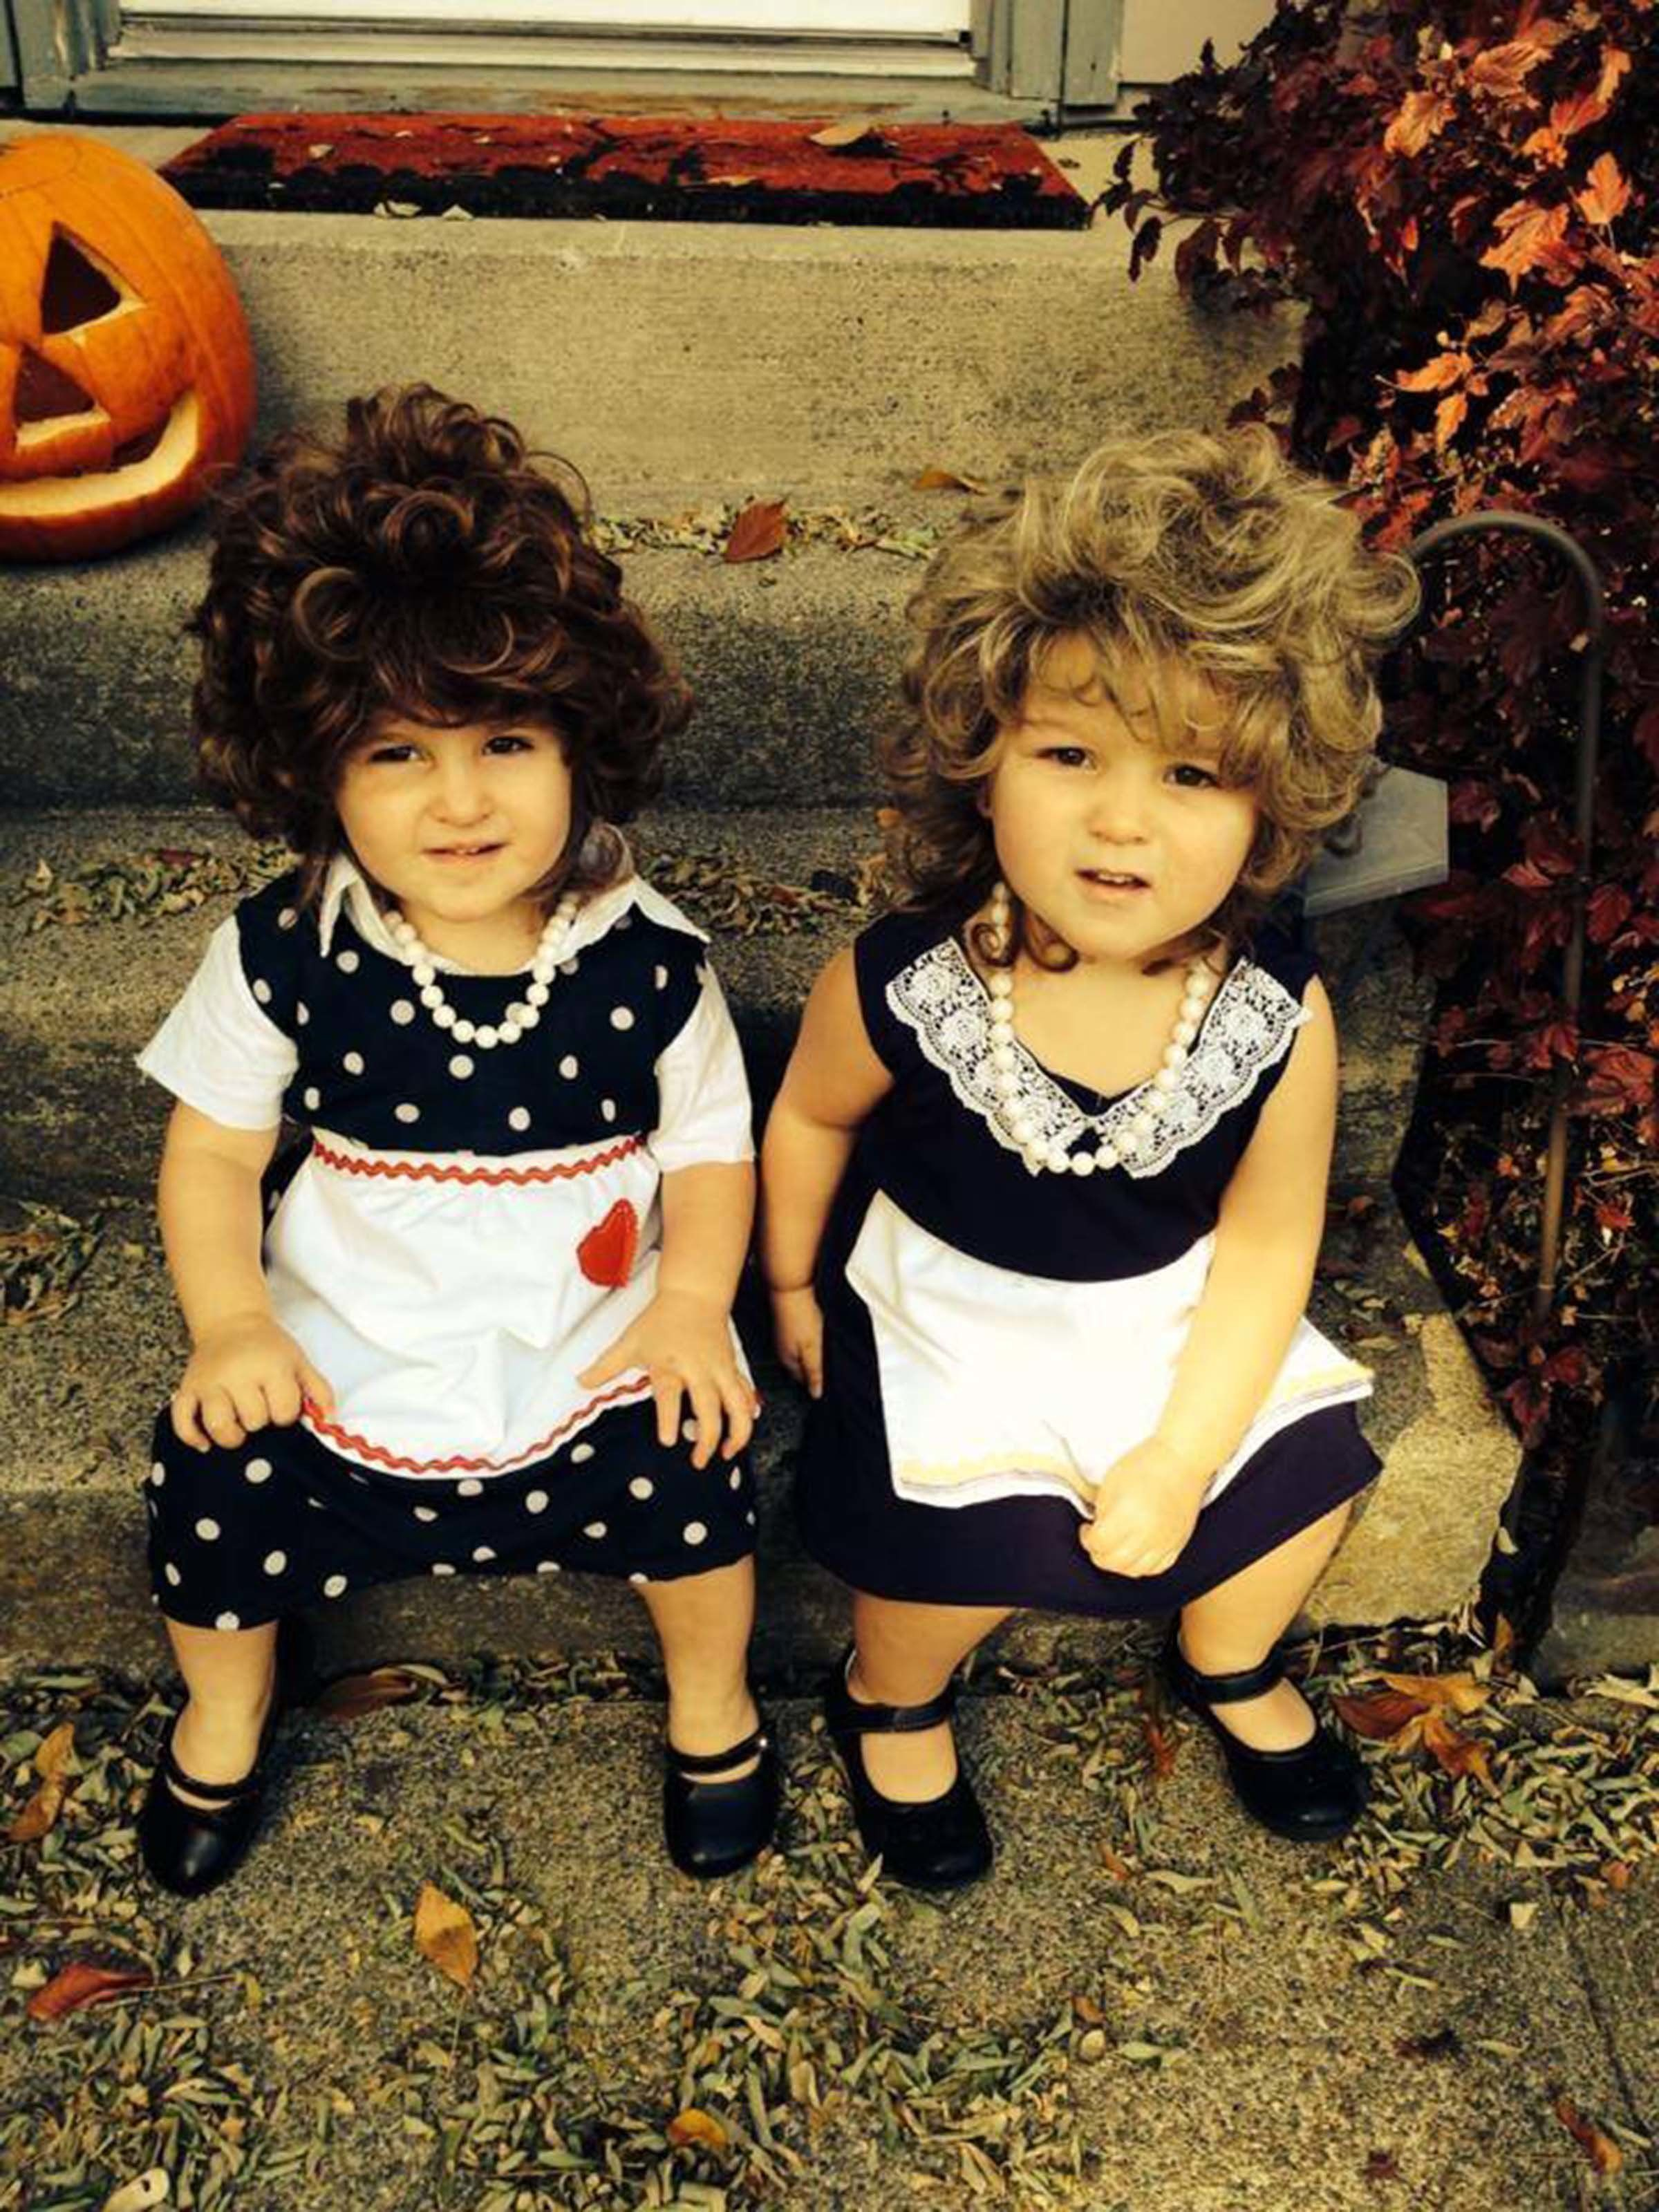 Courtesy of Brooke Barner  sc 1 st  HuffPost & 22 Halloween Costume For Twins That Are Double The Fun | HuffPost